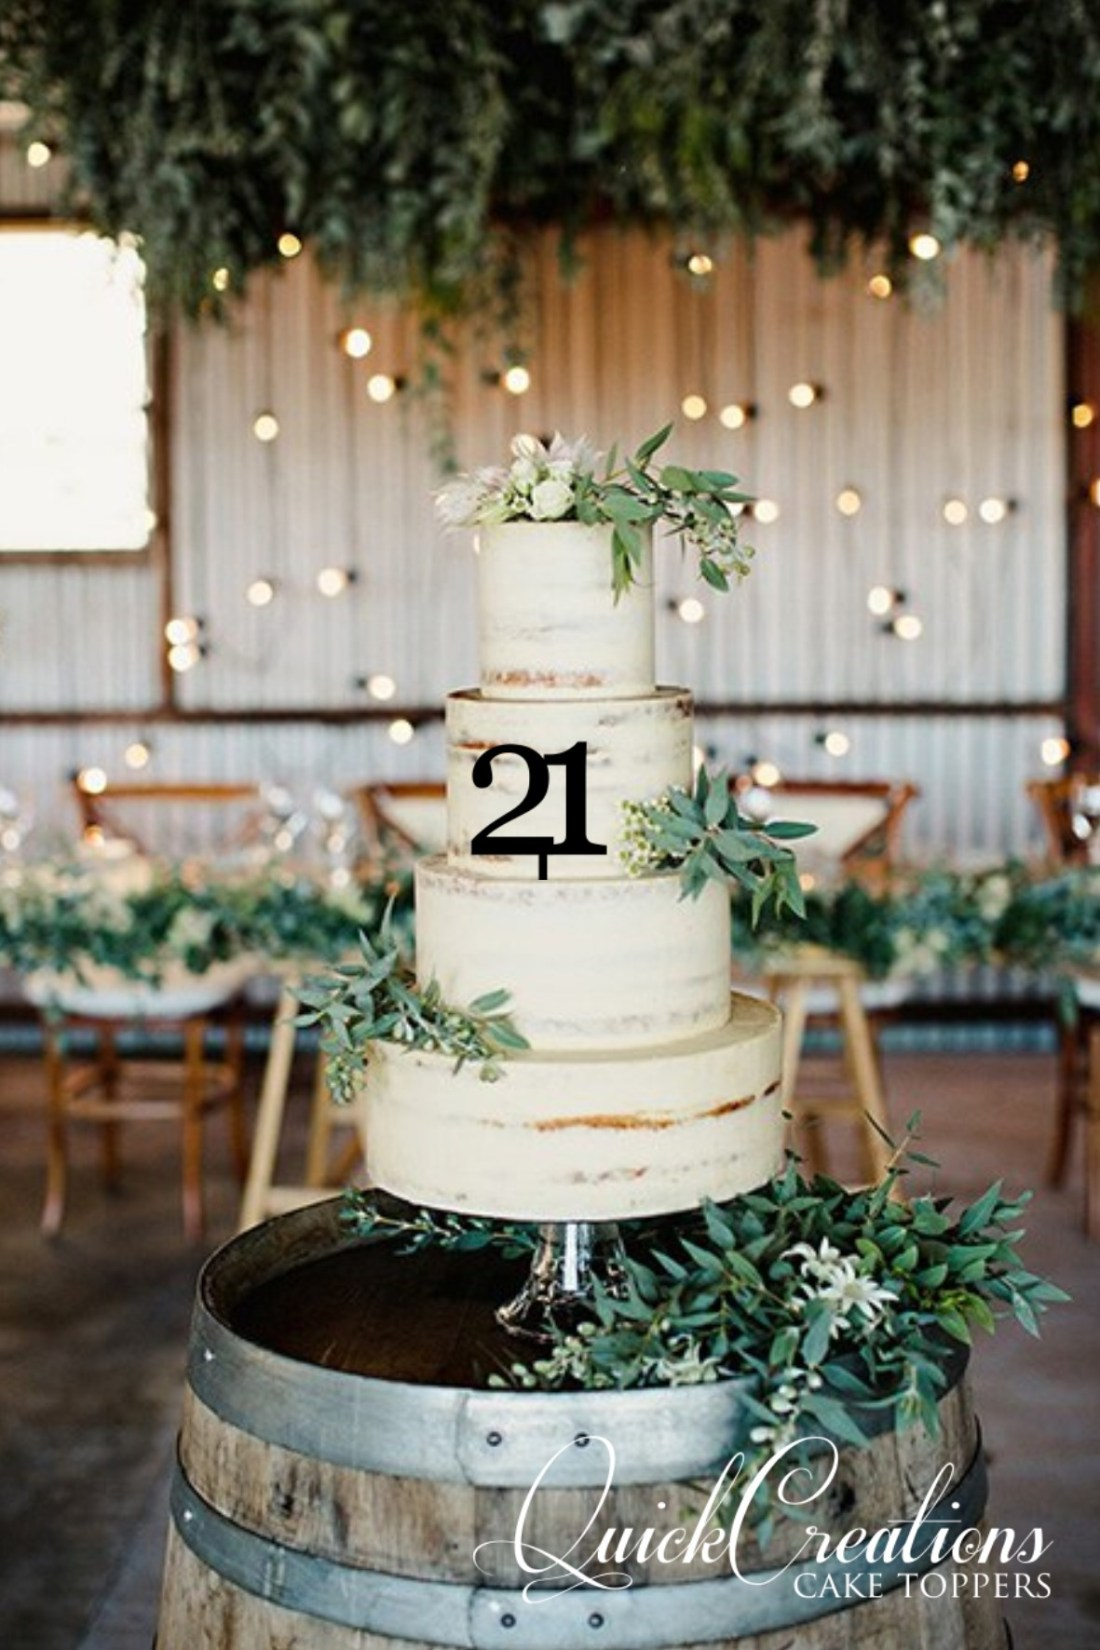 Quick Creations Cake Topper- 21